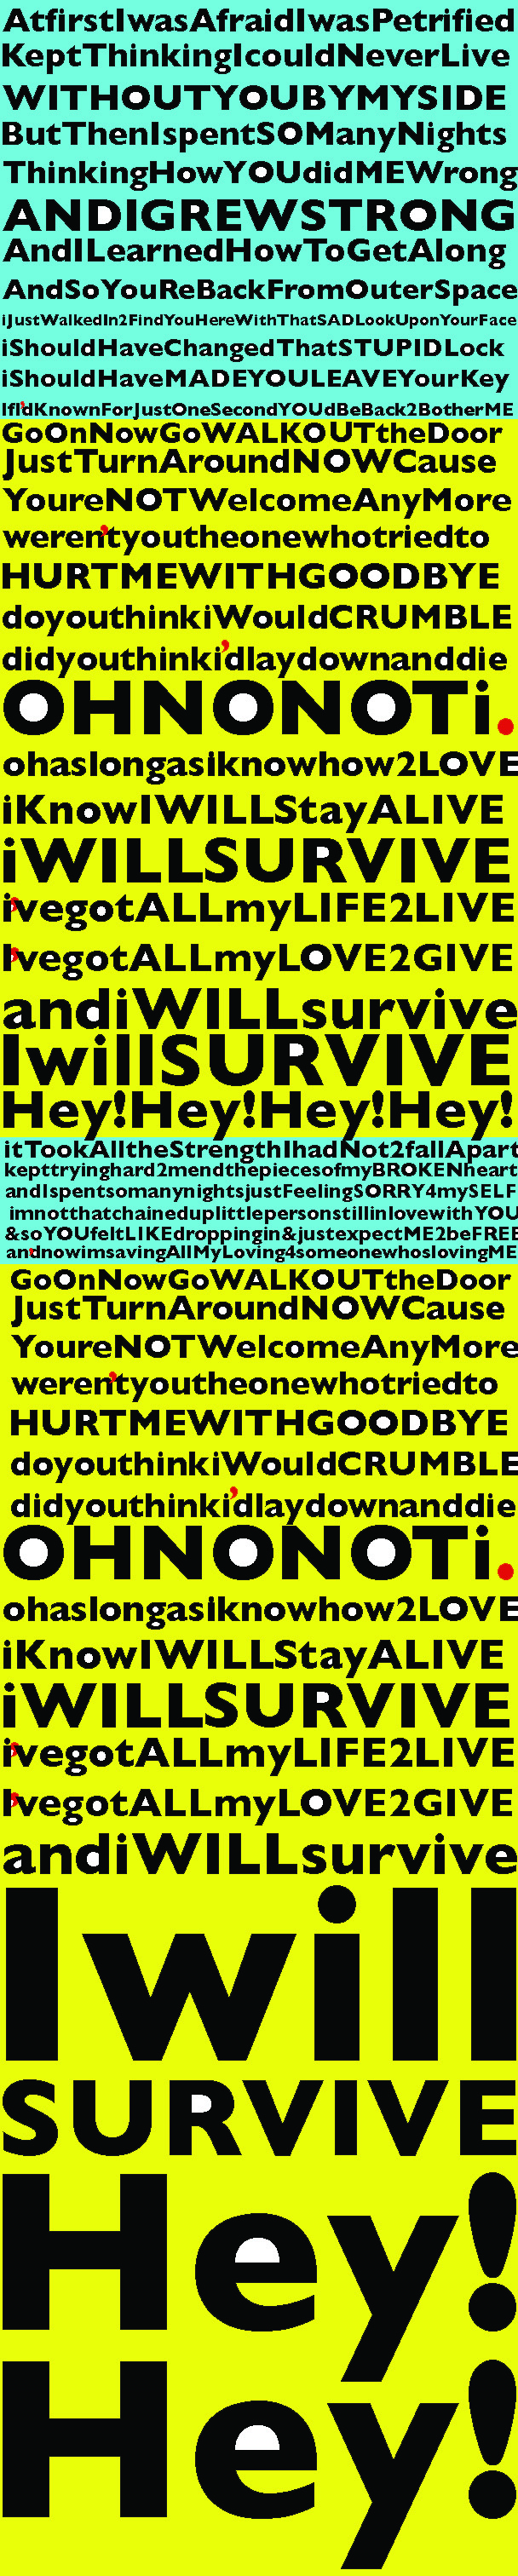 graphic illustration of I will Survive song's lyrics Gloria Gaynor bold